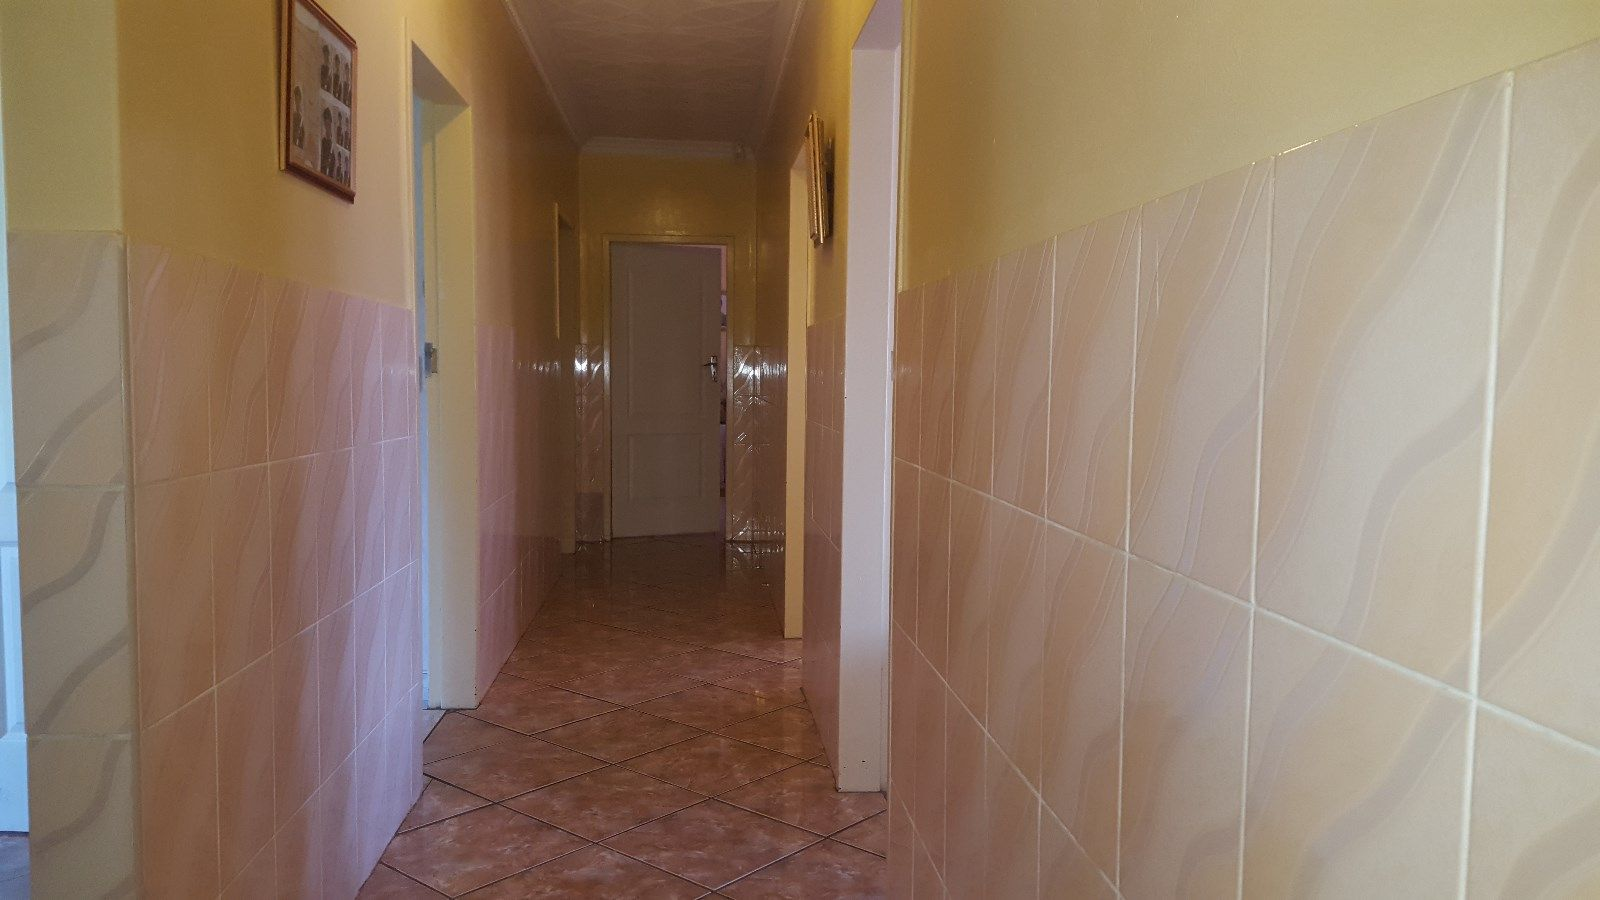 Potchefstroom Central for sale property. Ref No: 13451730. Picture no 11